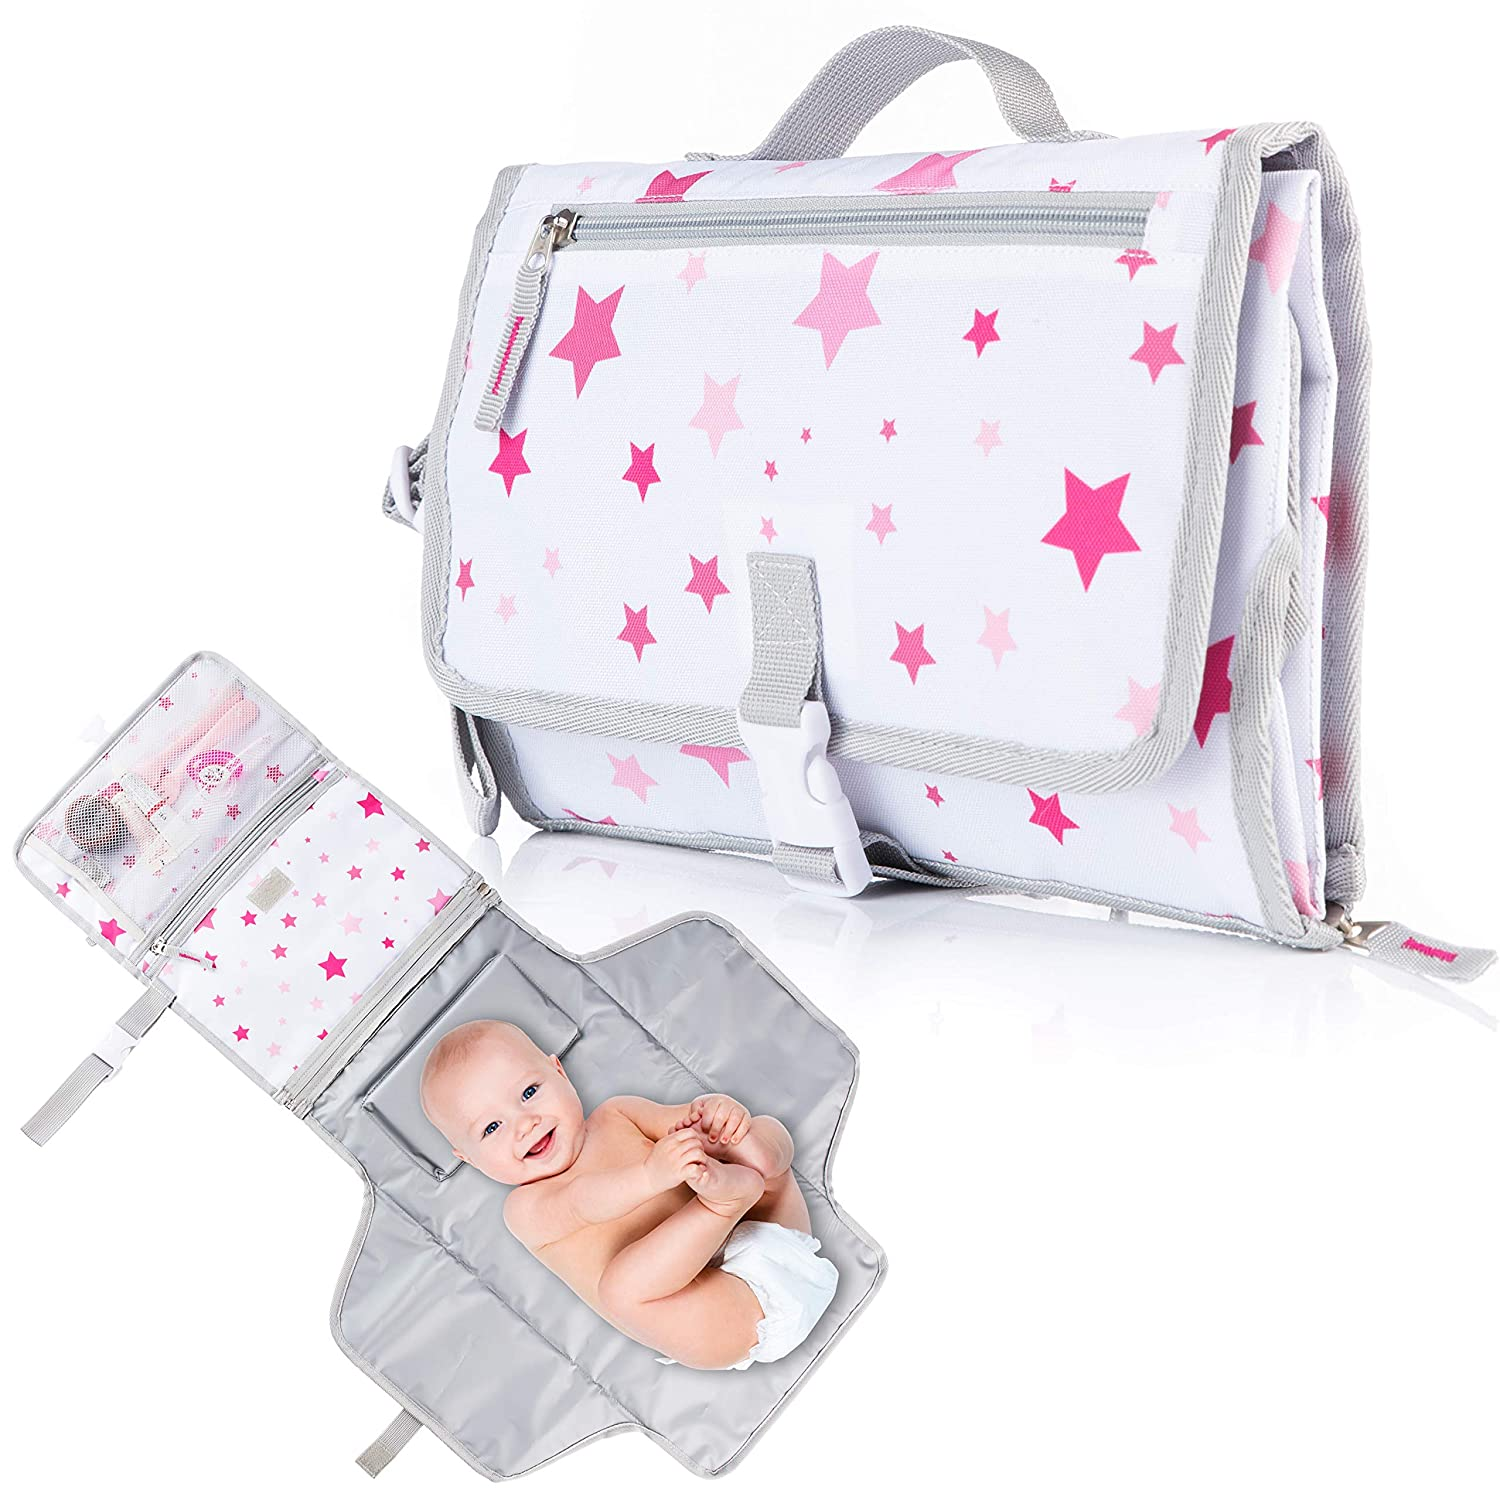 Ludivy Portable Diaper Changing Pad for Baby Girl - Diaper Clutch with Detachable and Waterproof Diaper Changing Mat, Pockets for Baby Essentials - Compact and Foldable Travel Changing Pad